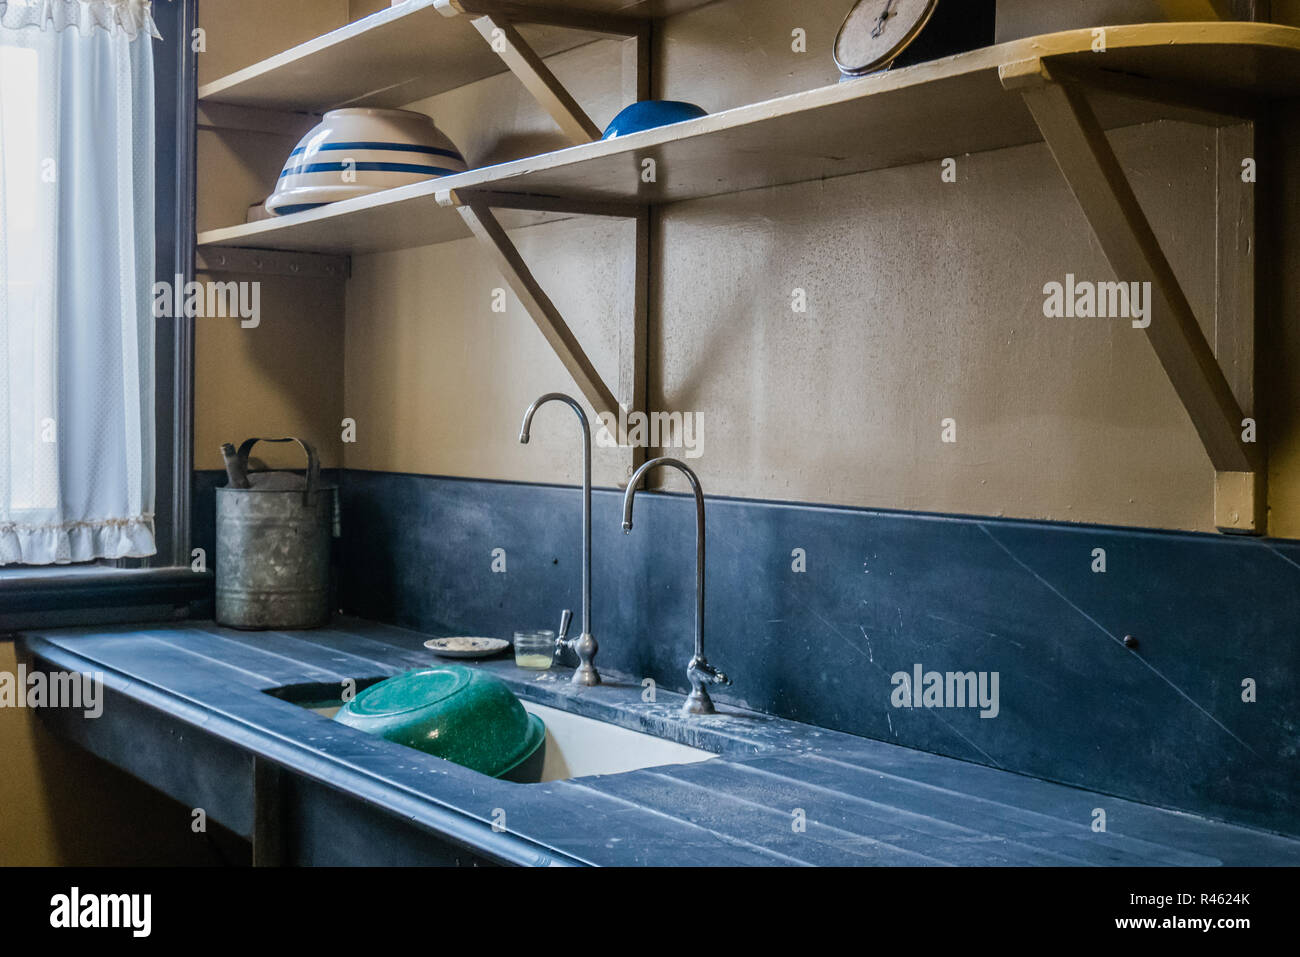 old kitchen sink and washing area modeled after 1920s wealthy north american home - Stock Image